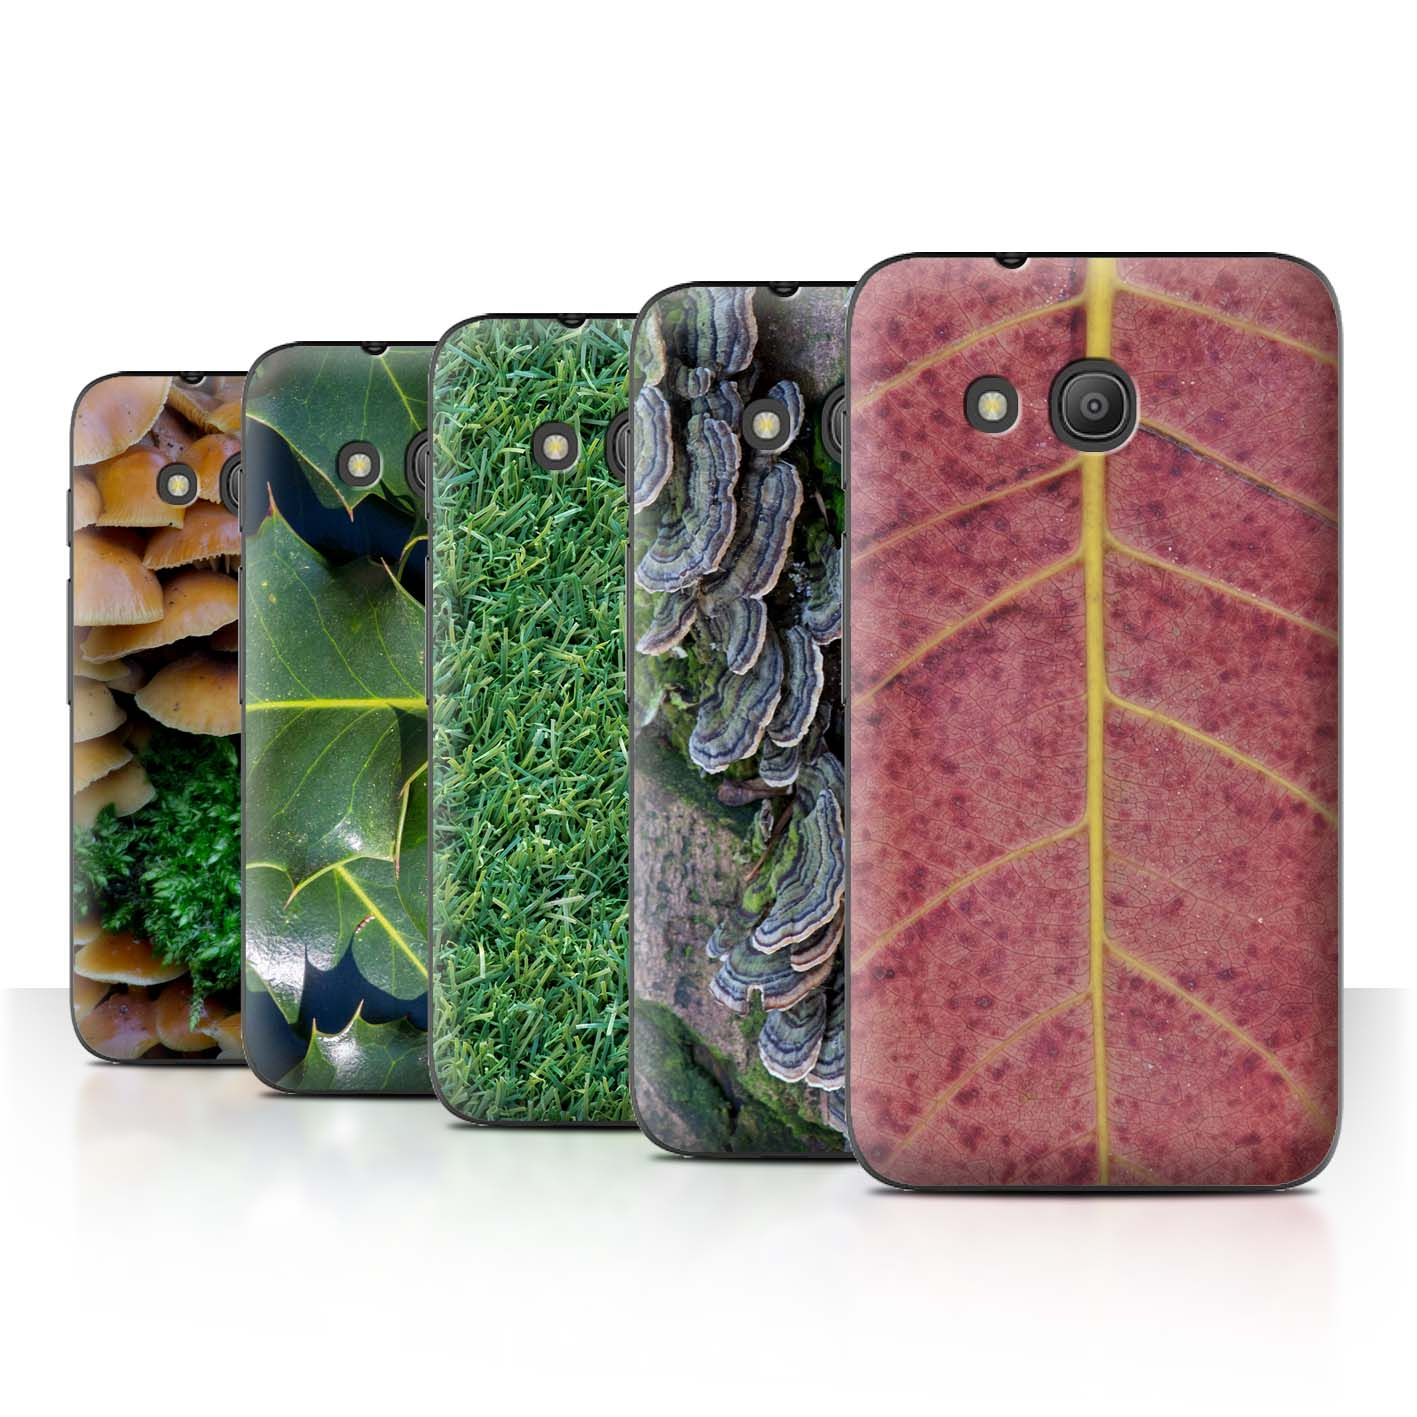 STUFF4-Back-Case-Cover-Skin-for-Alcatel-Pixi-4-4-034-Plants-Leaves